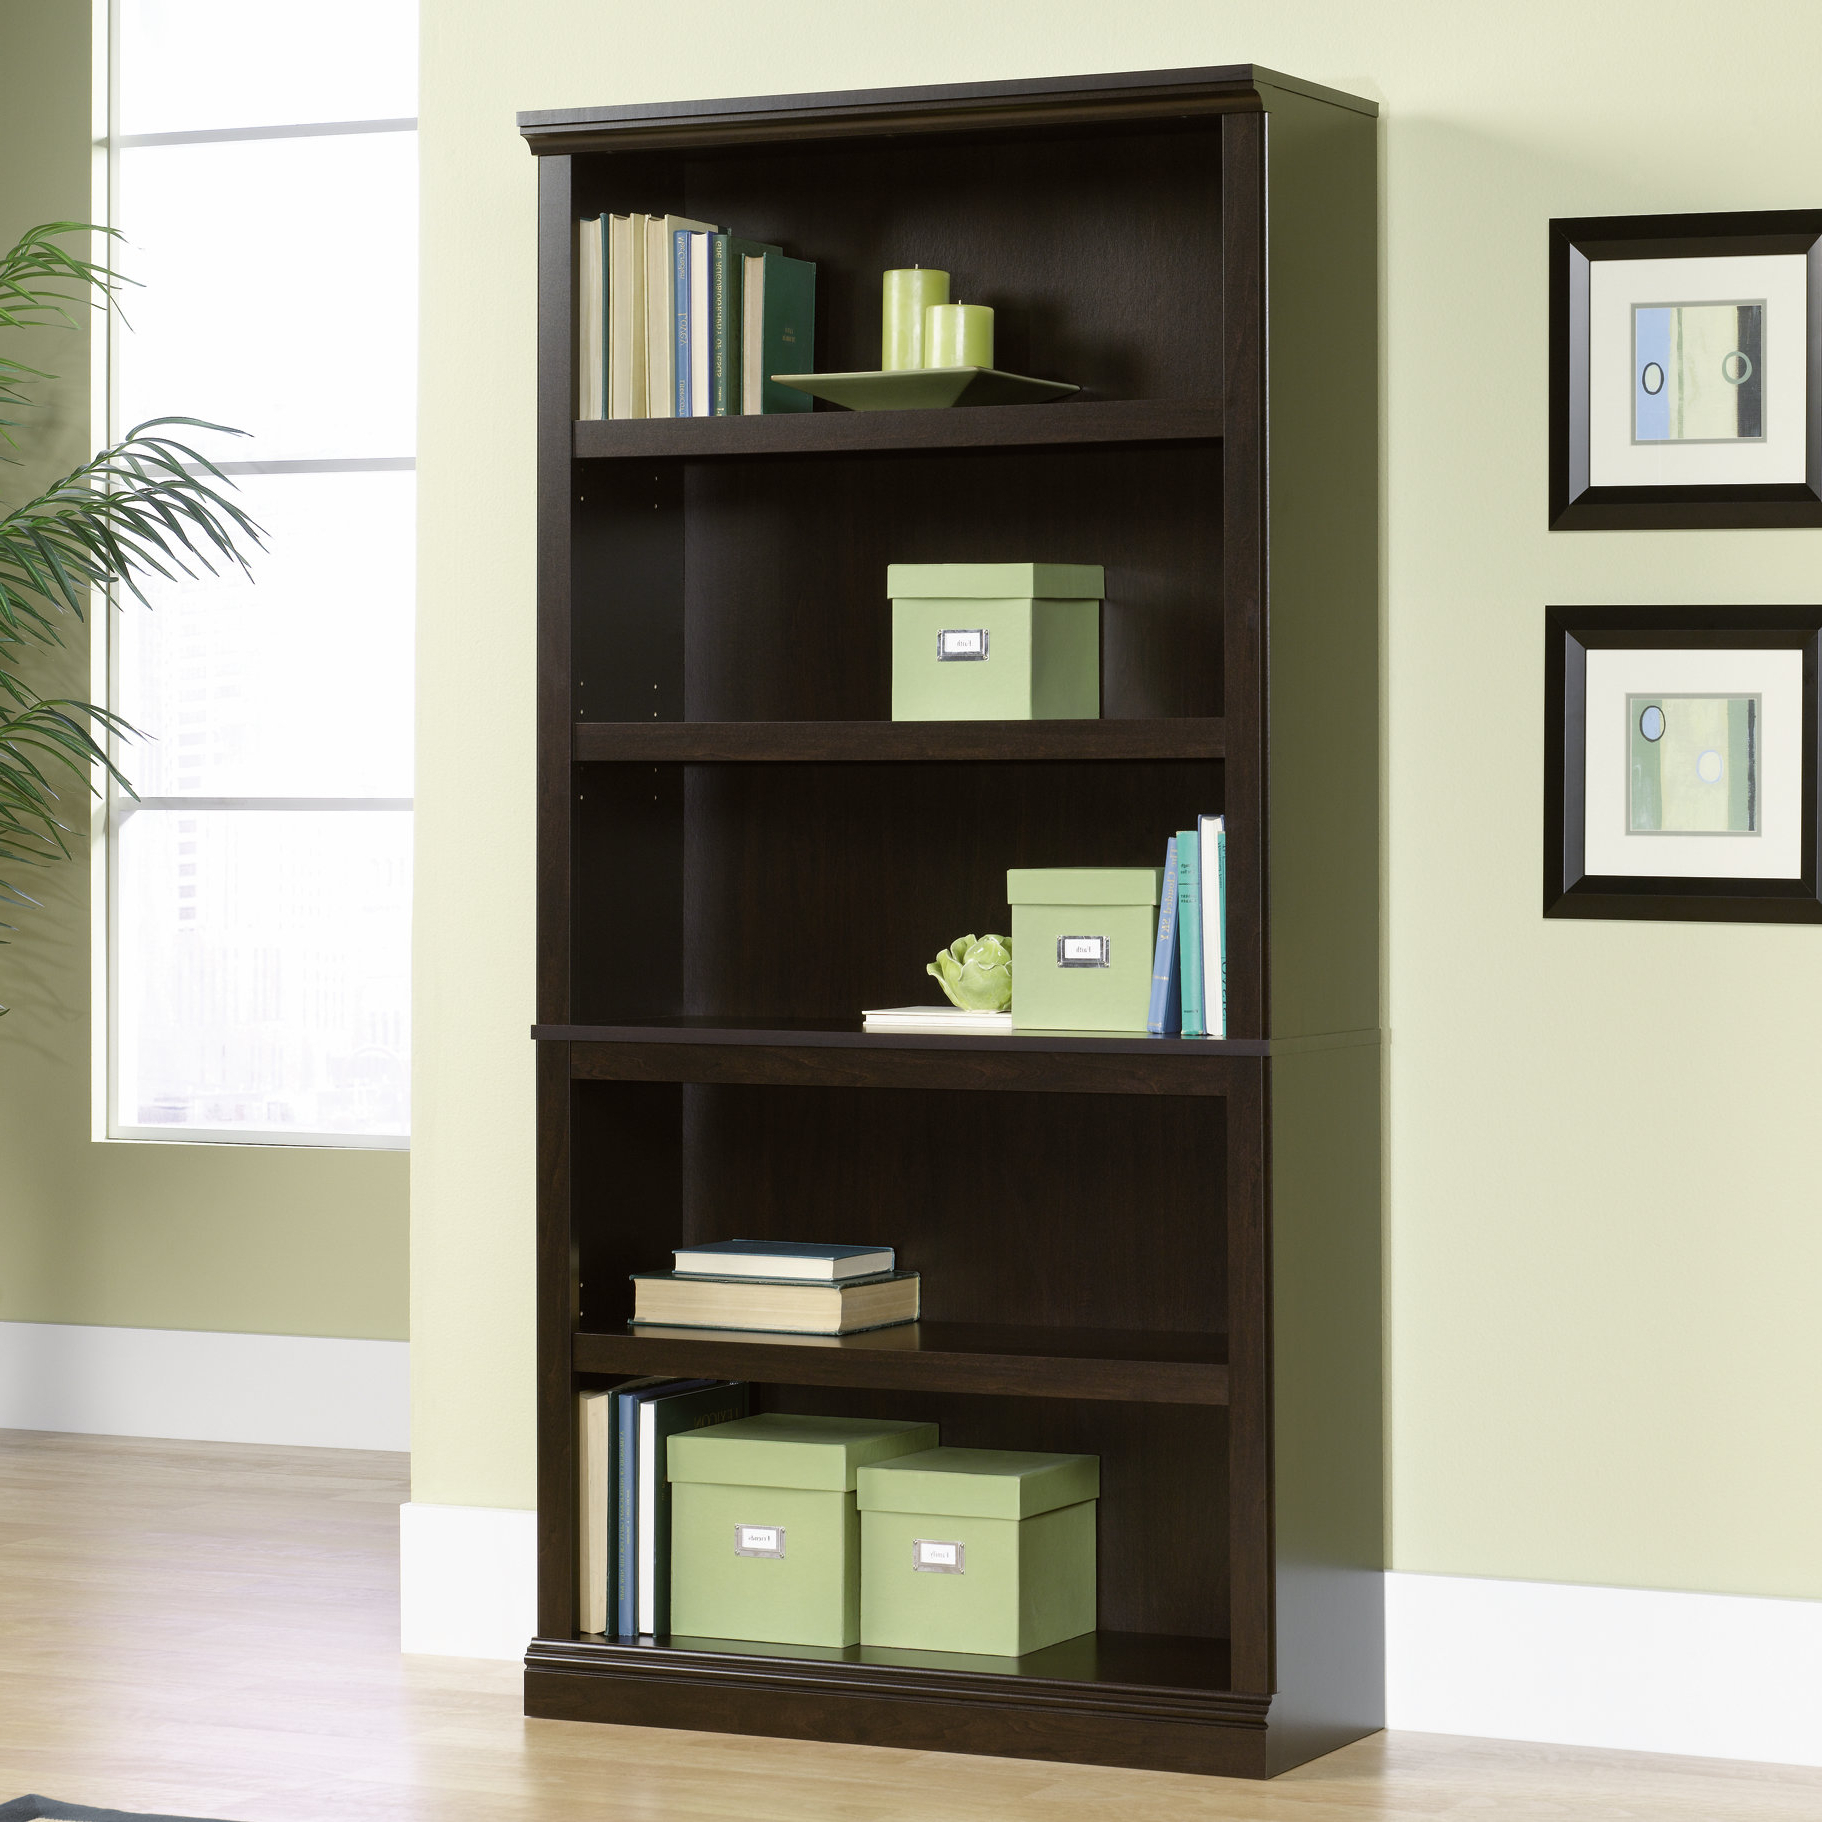 Abigail Standard Bookcase For Current Abigail Standard Bookcases (Gallery 4 of 20)